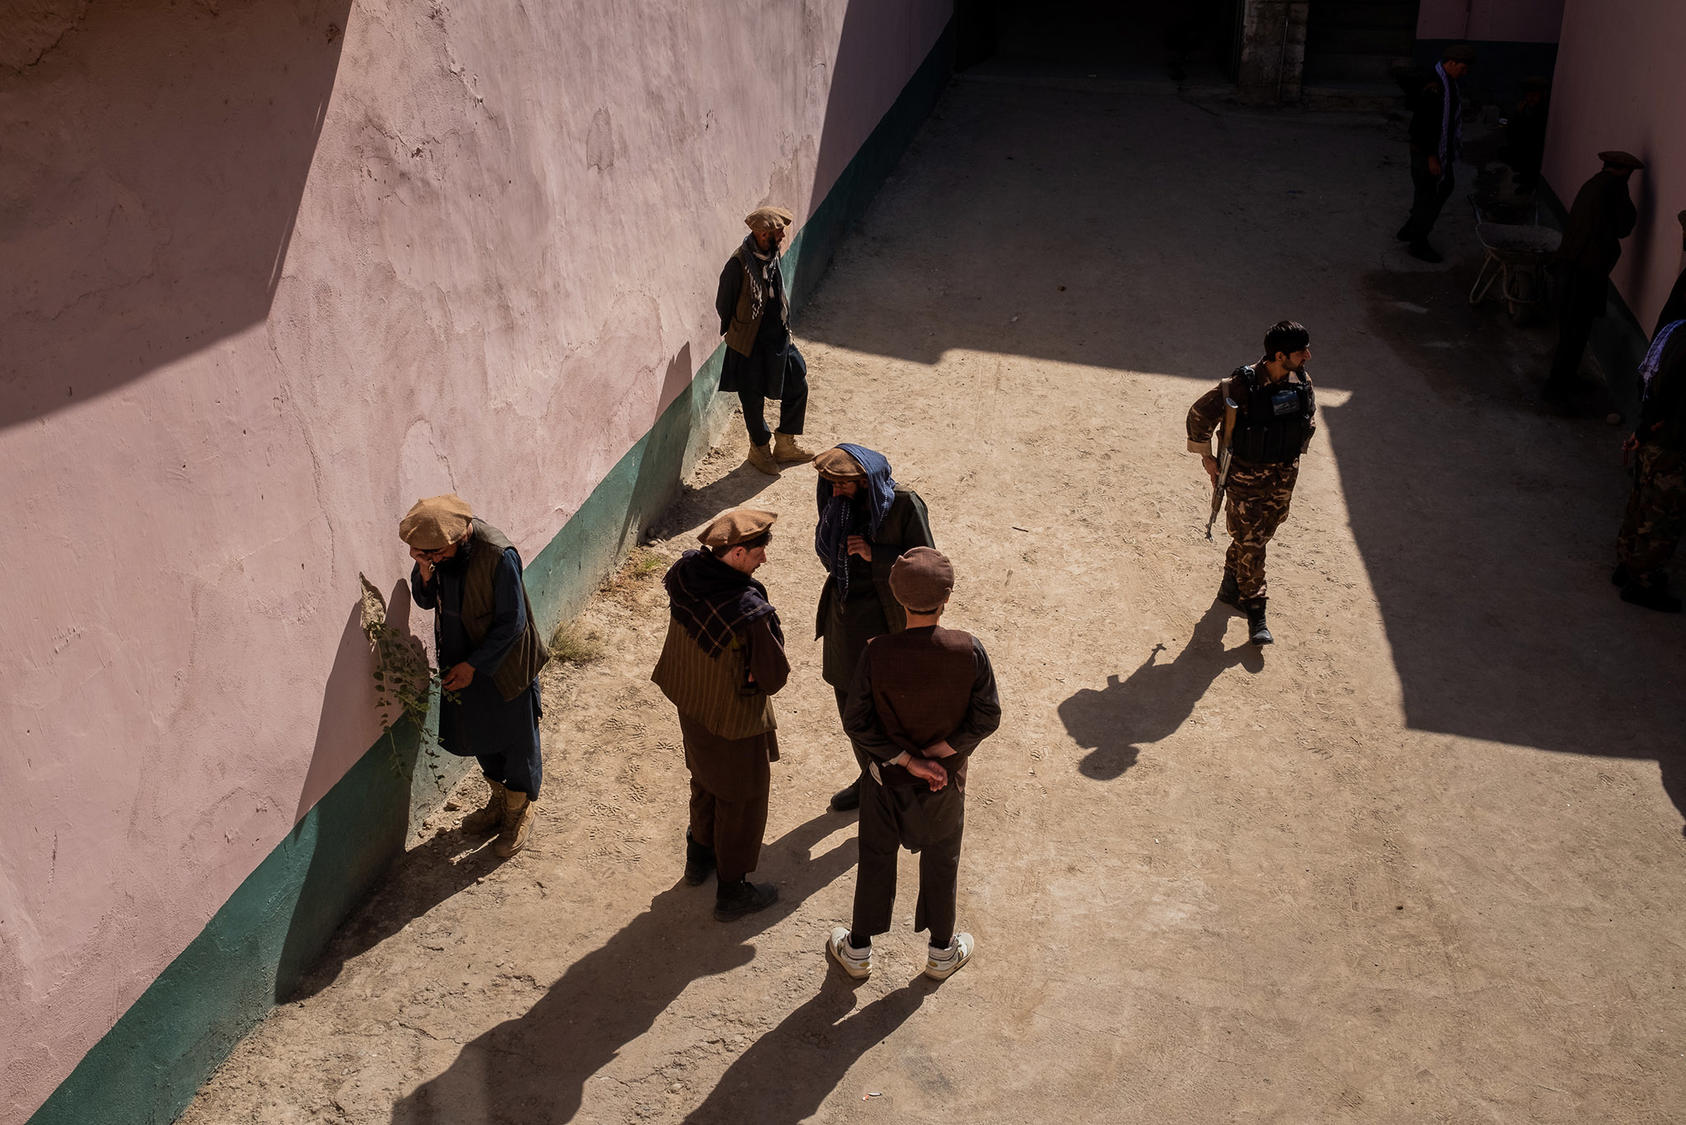 A soldier walks among a group of alleged Taliban fighters at a National Directorate of Security facility in Faizabad in September 2019. The status of prisoners will be a critical issue in future negotiations with the Taliban. (Jim Huylebroek/New York Times)